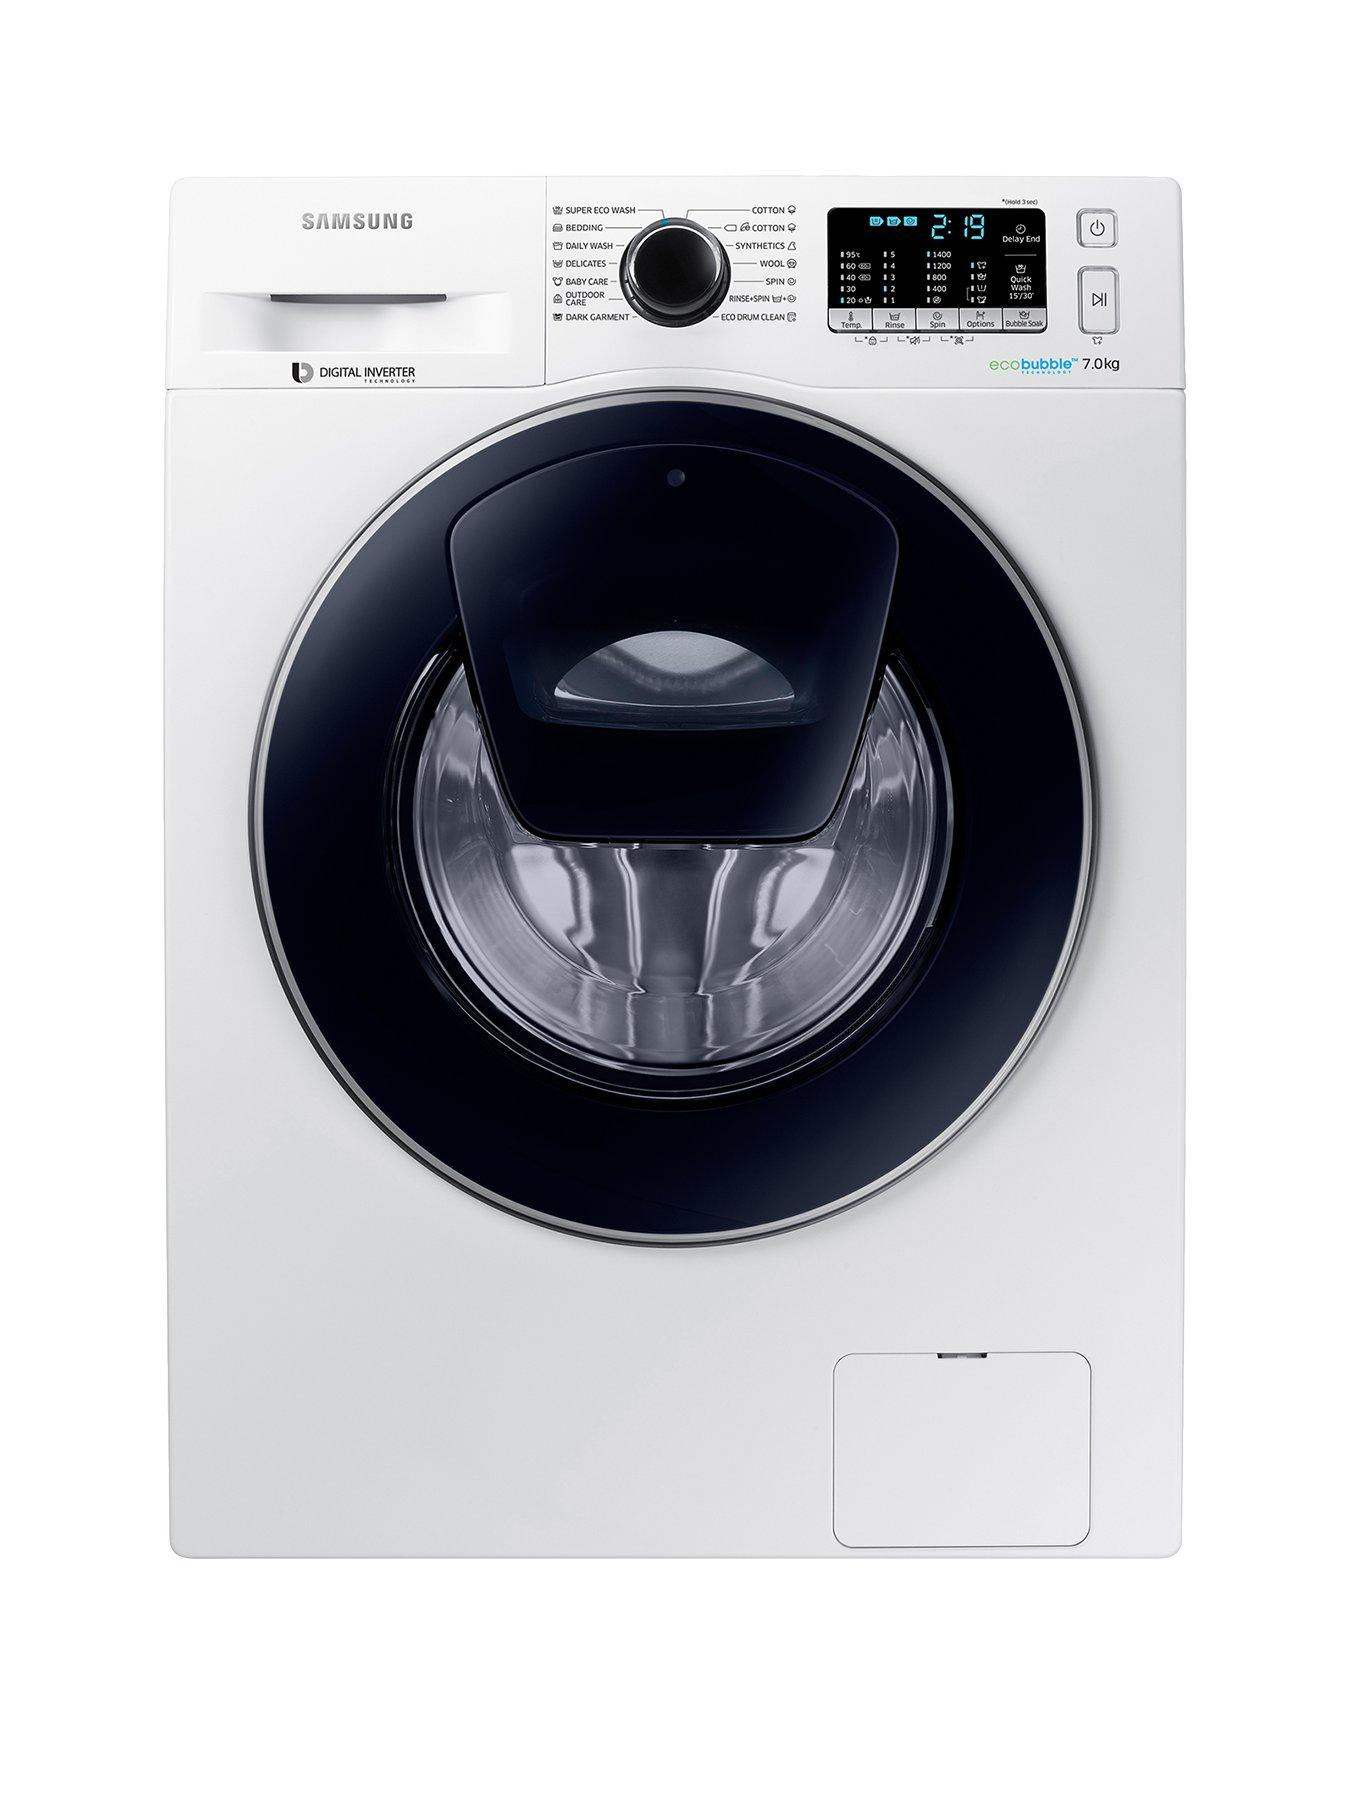 samsung 7kg load spin addwash washing machine with ecobubble technology white